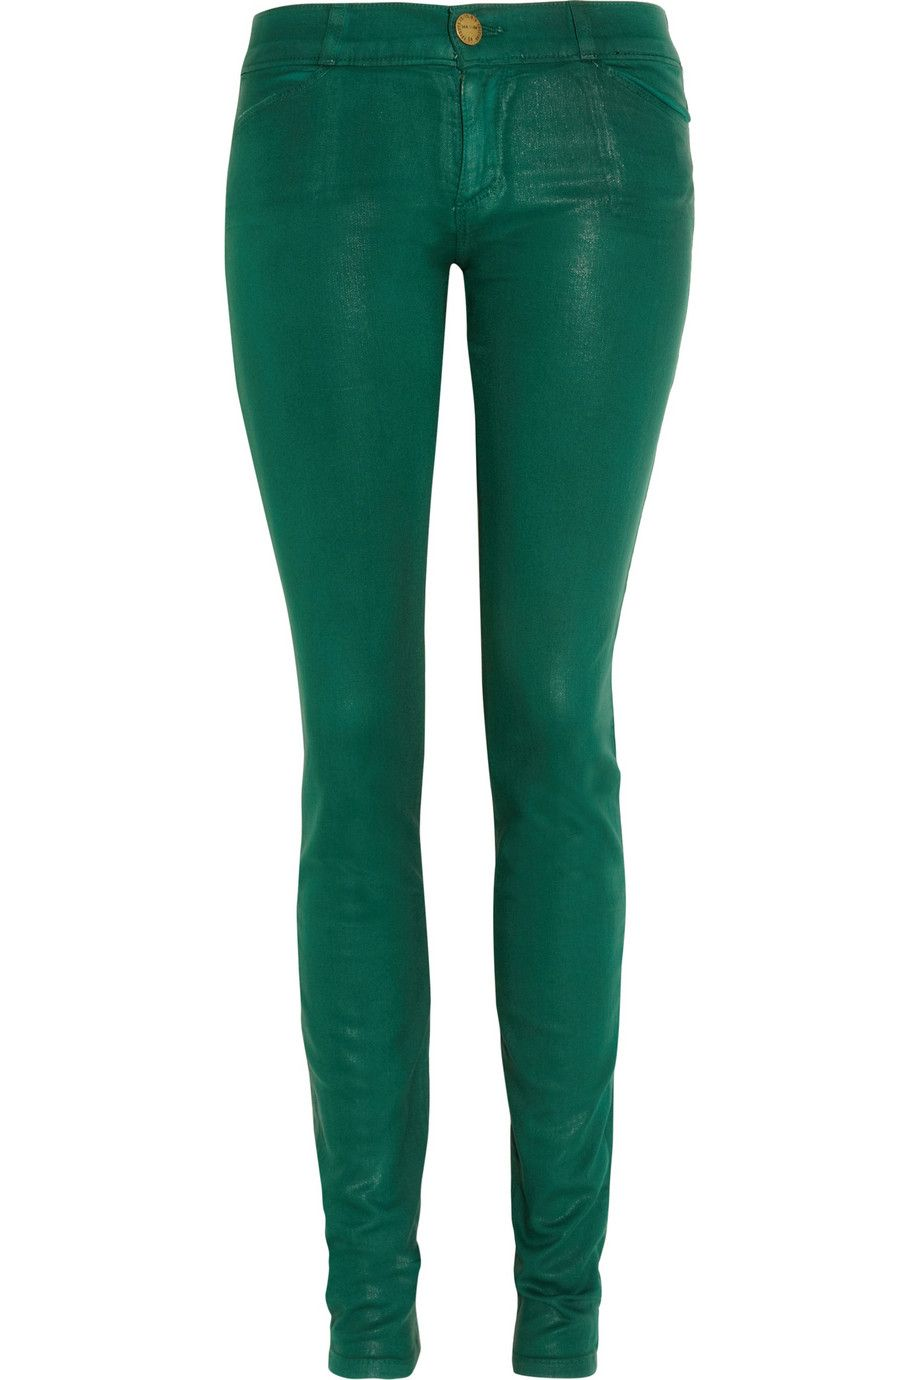 d4c90c8adea93 Current/Elliott | The Jean Legging coated low-rise jeans | NET-A-PORTER.COM